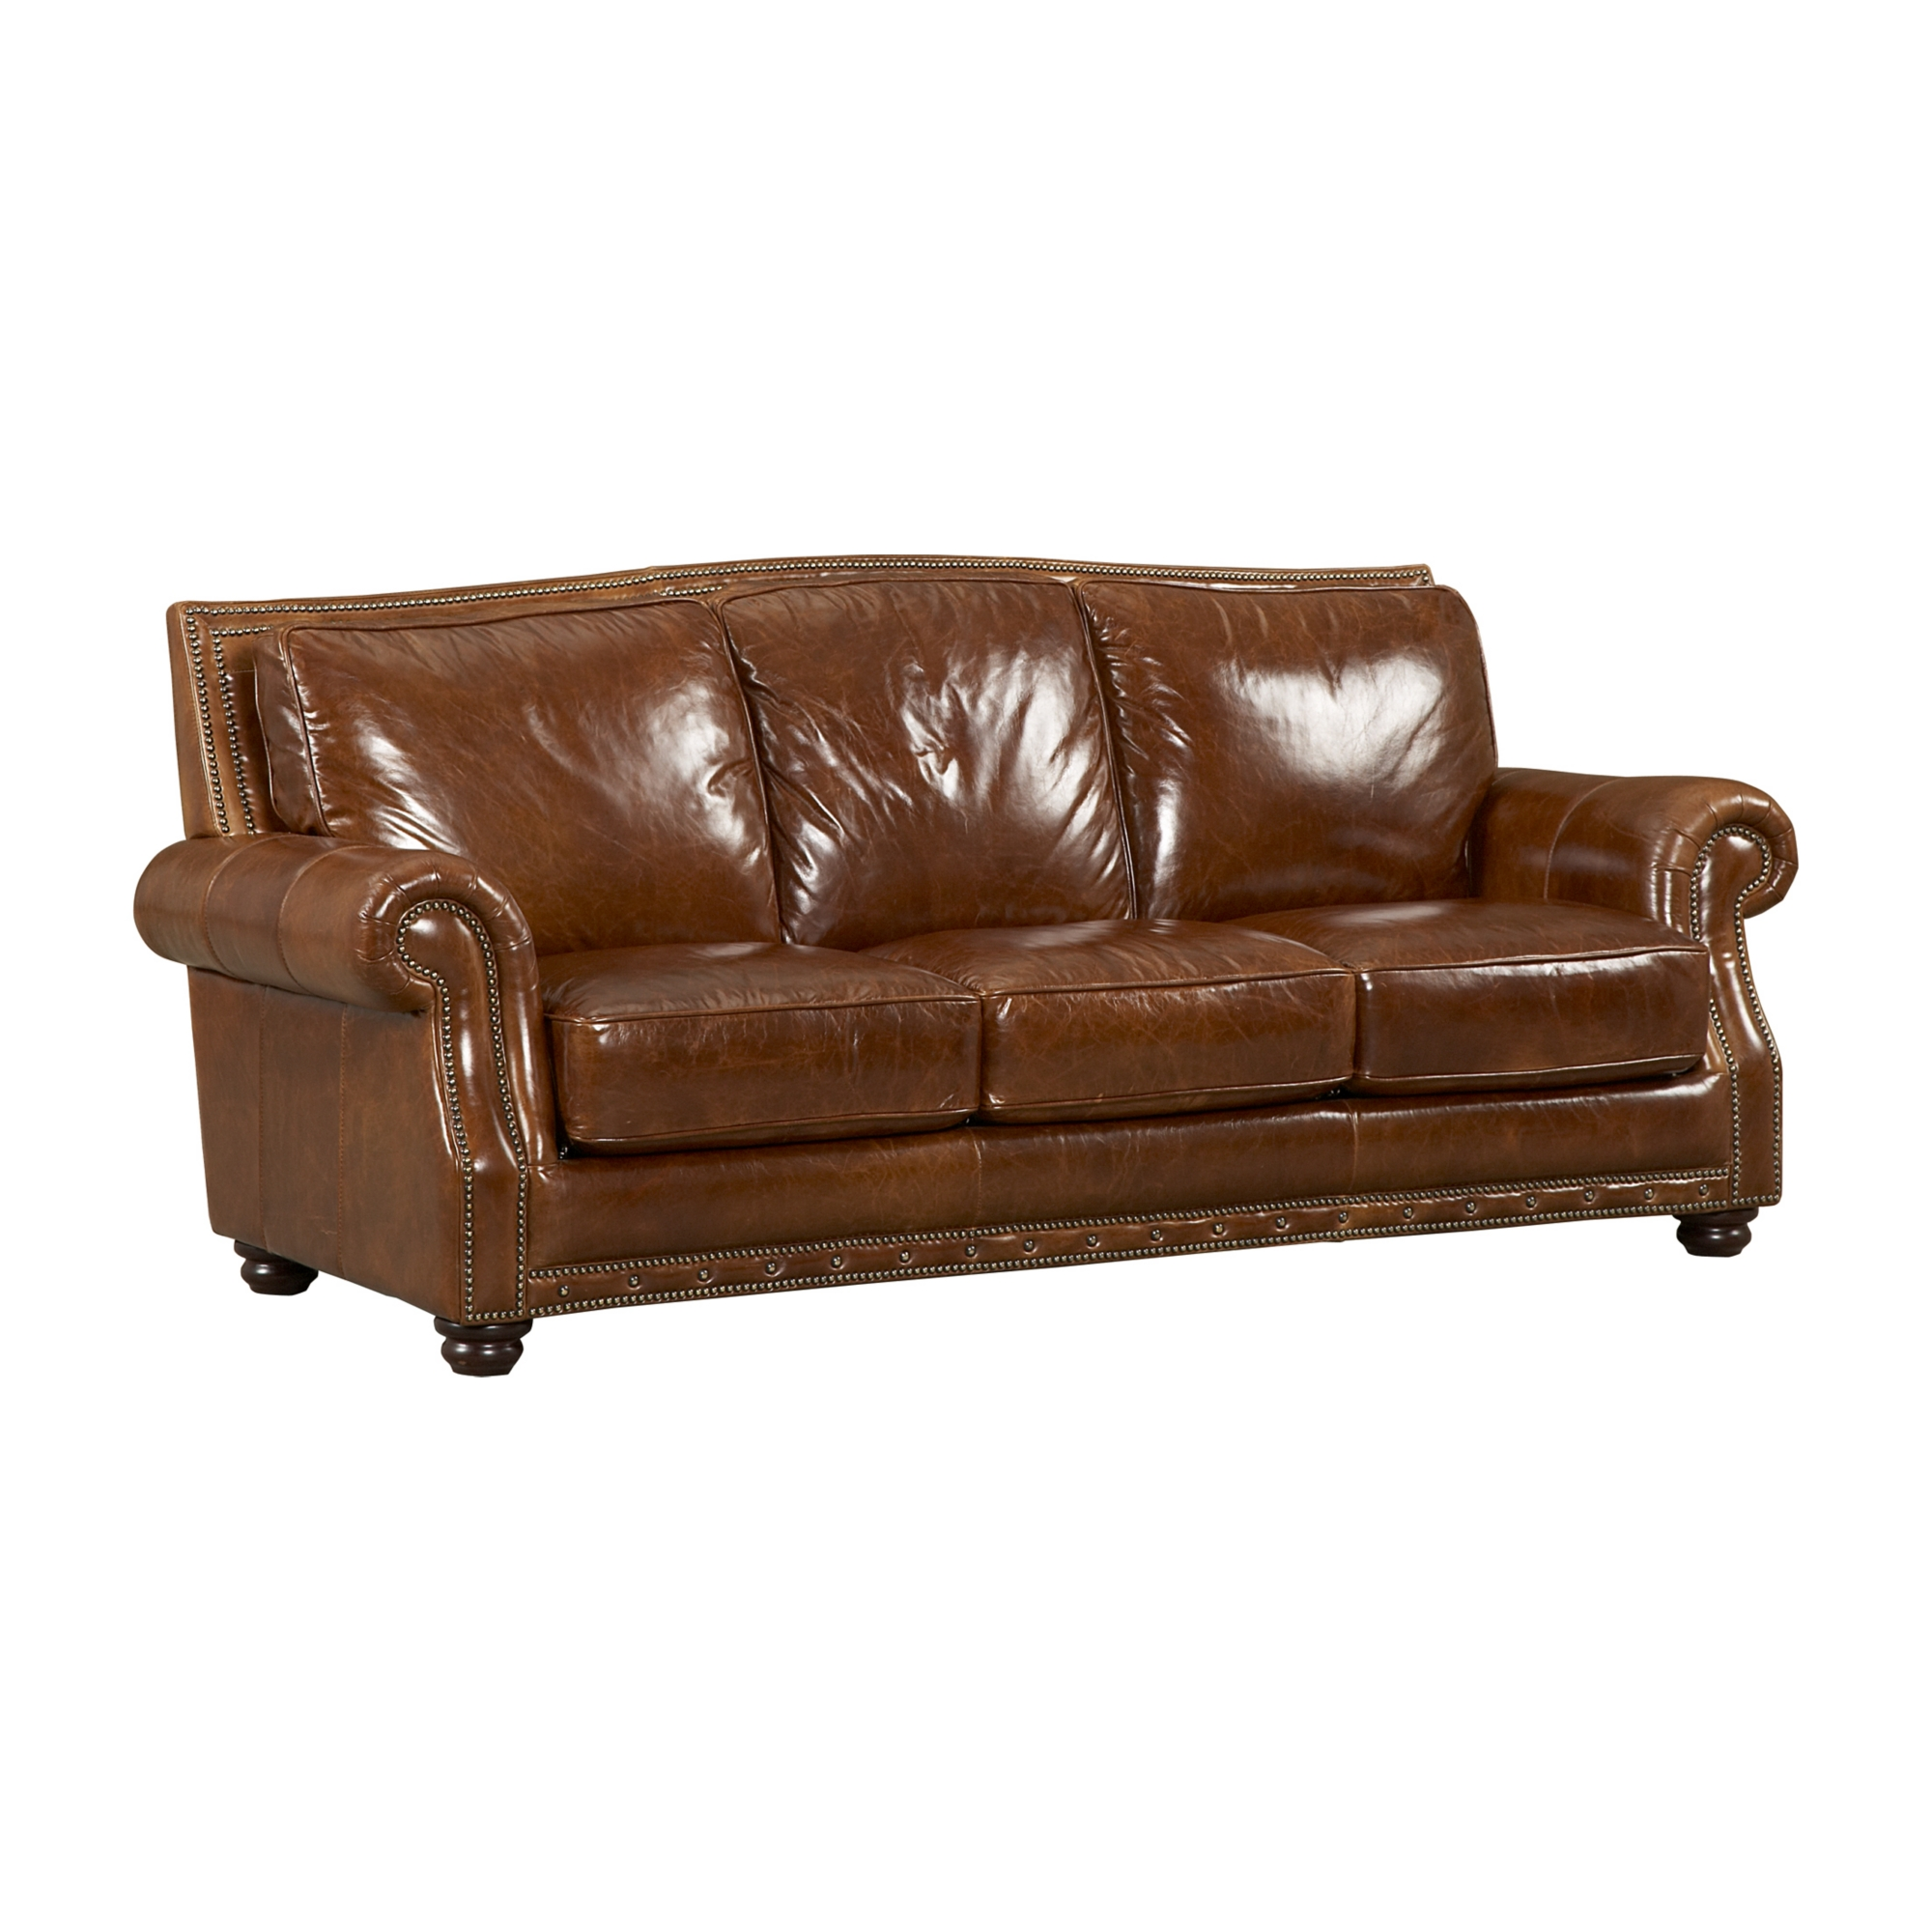 Cagney leather sofa vintage autumn sofa family room for Furniture leather sofa